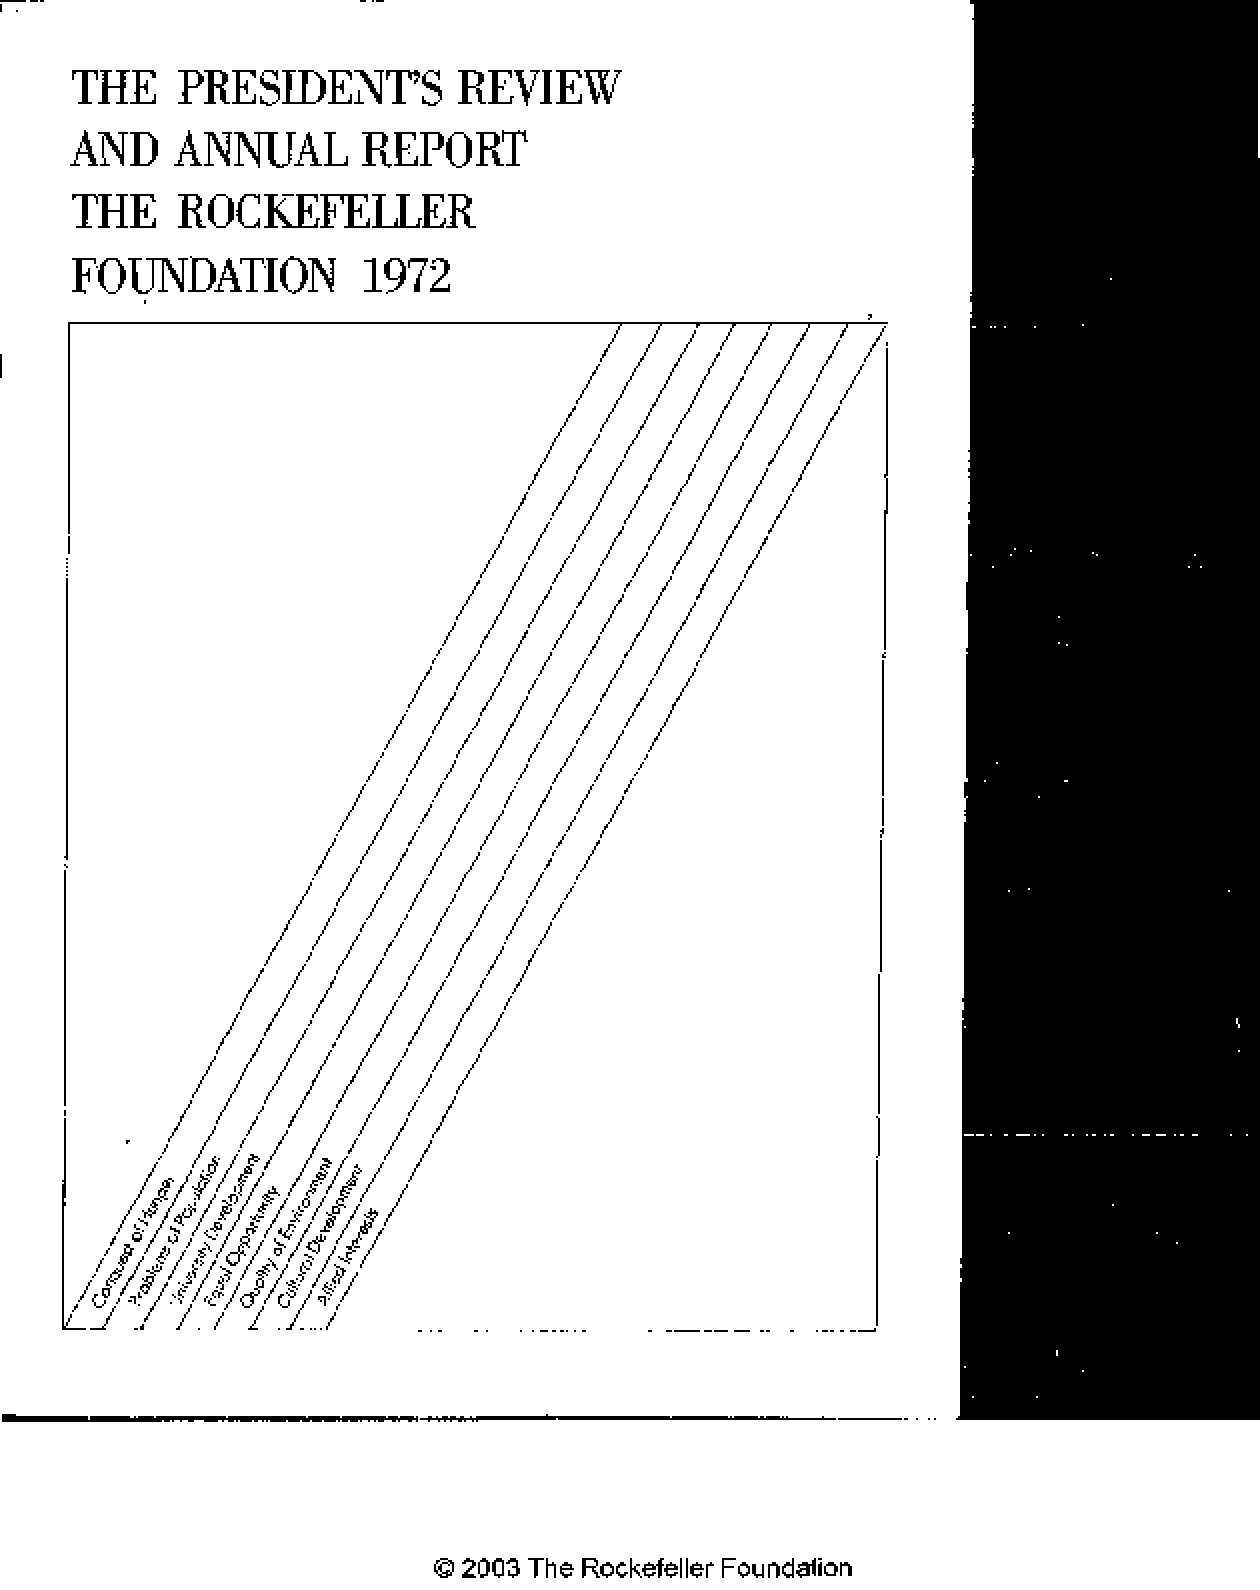 Rockefeller Foundation - 1972 Annual Report